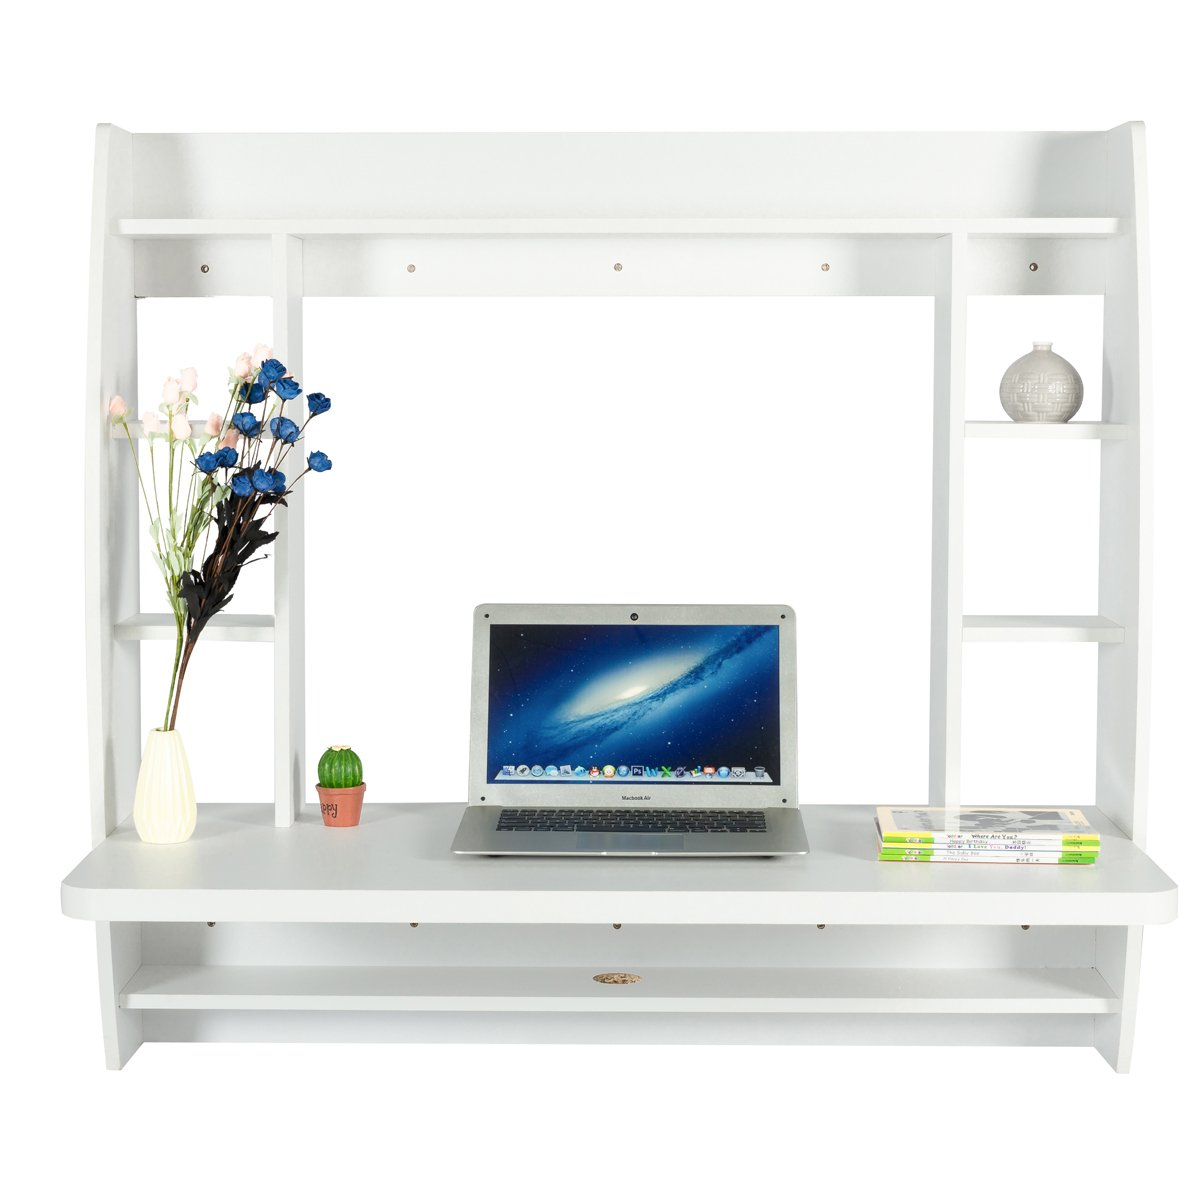 Image of wall mounted office desk